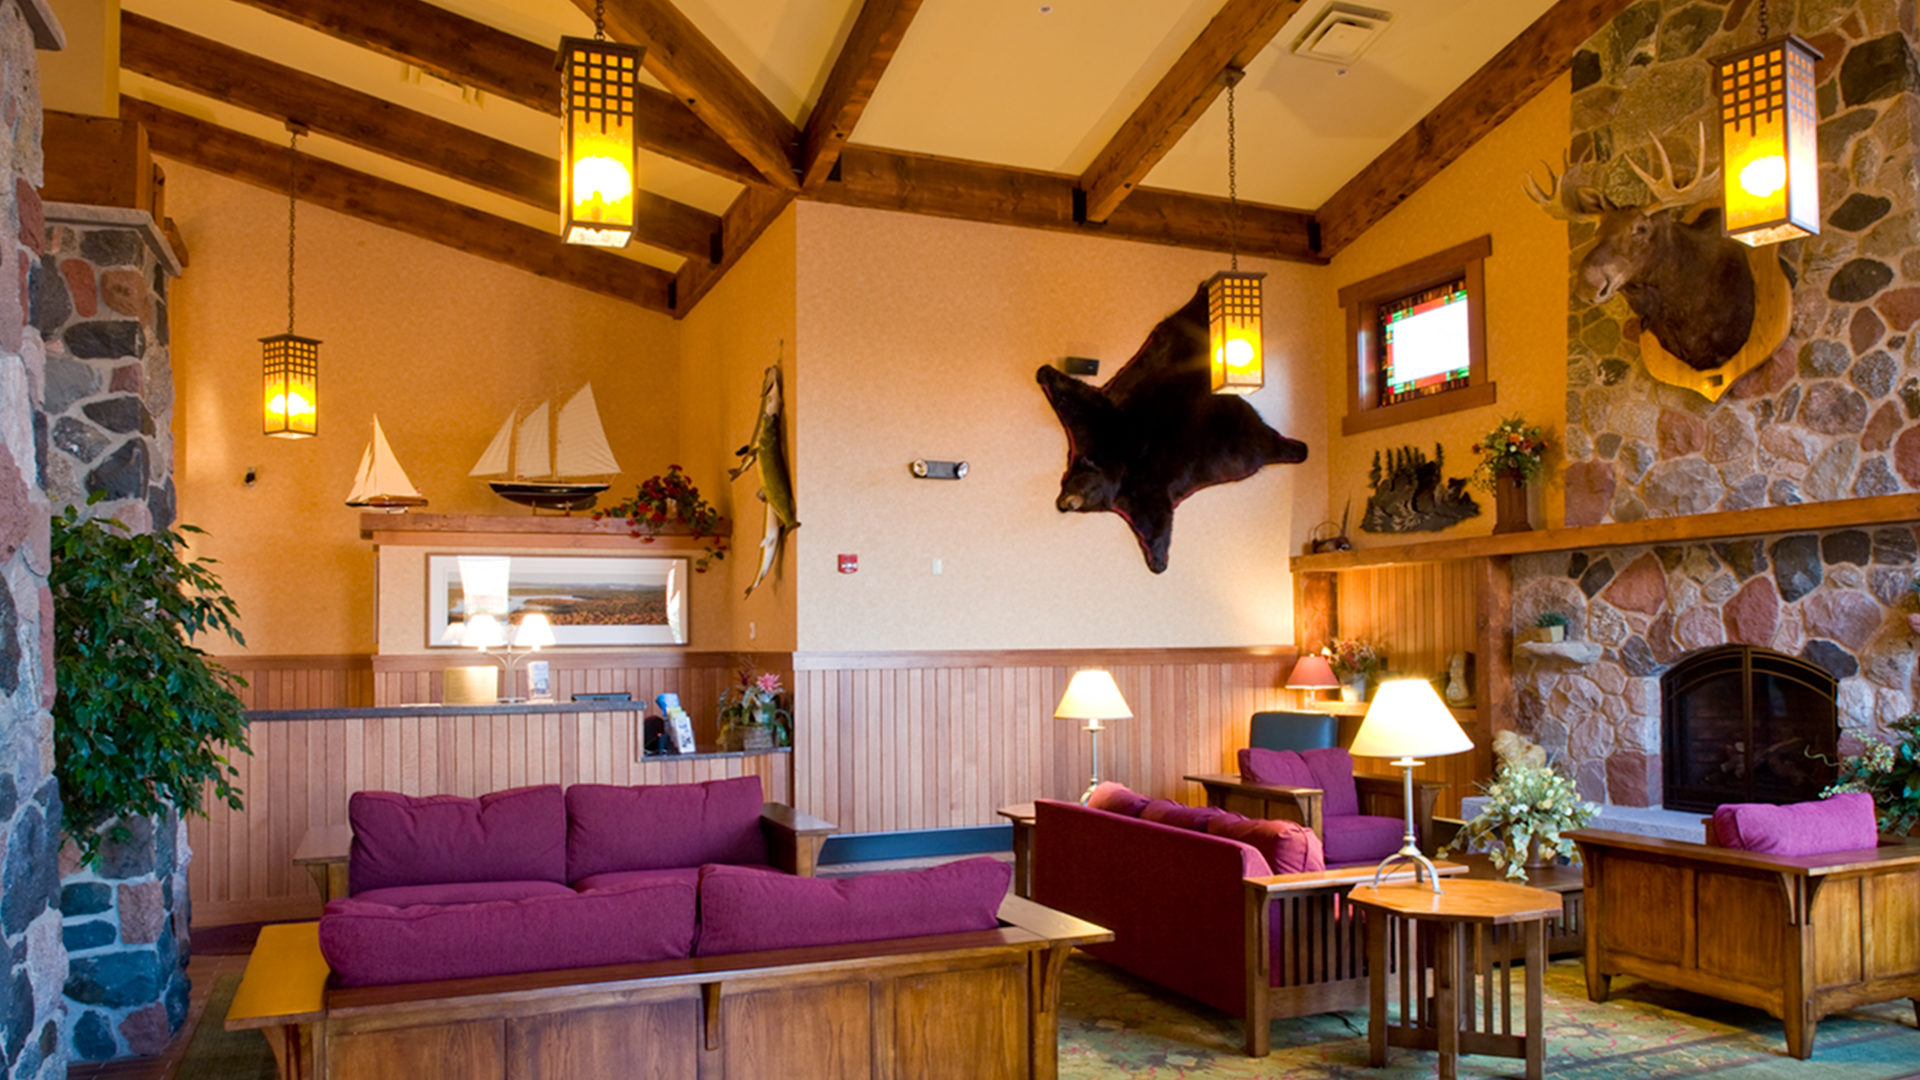 Canal Park Lodge Hotel Duluth Interior Lobby Lodge Seating Area with Stone Fireplace